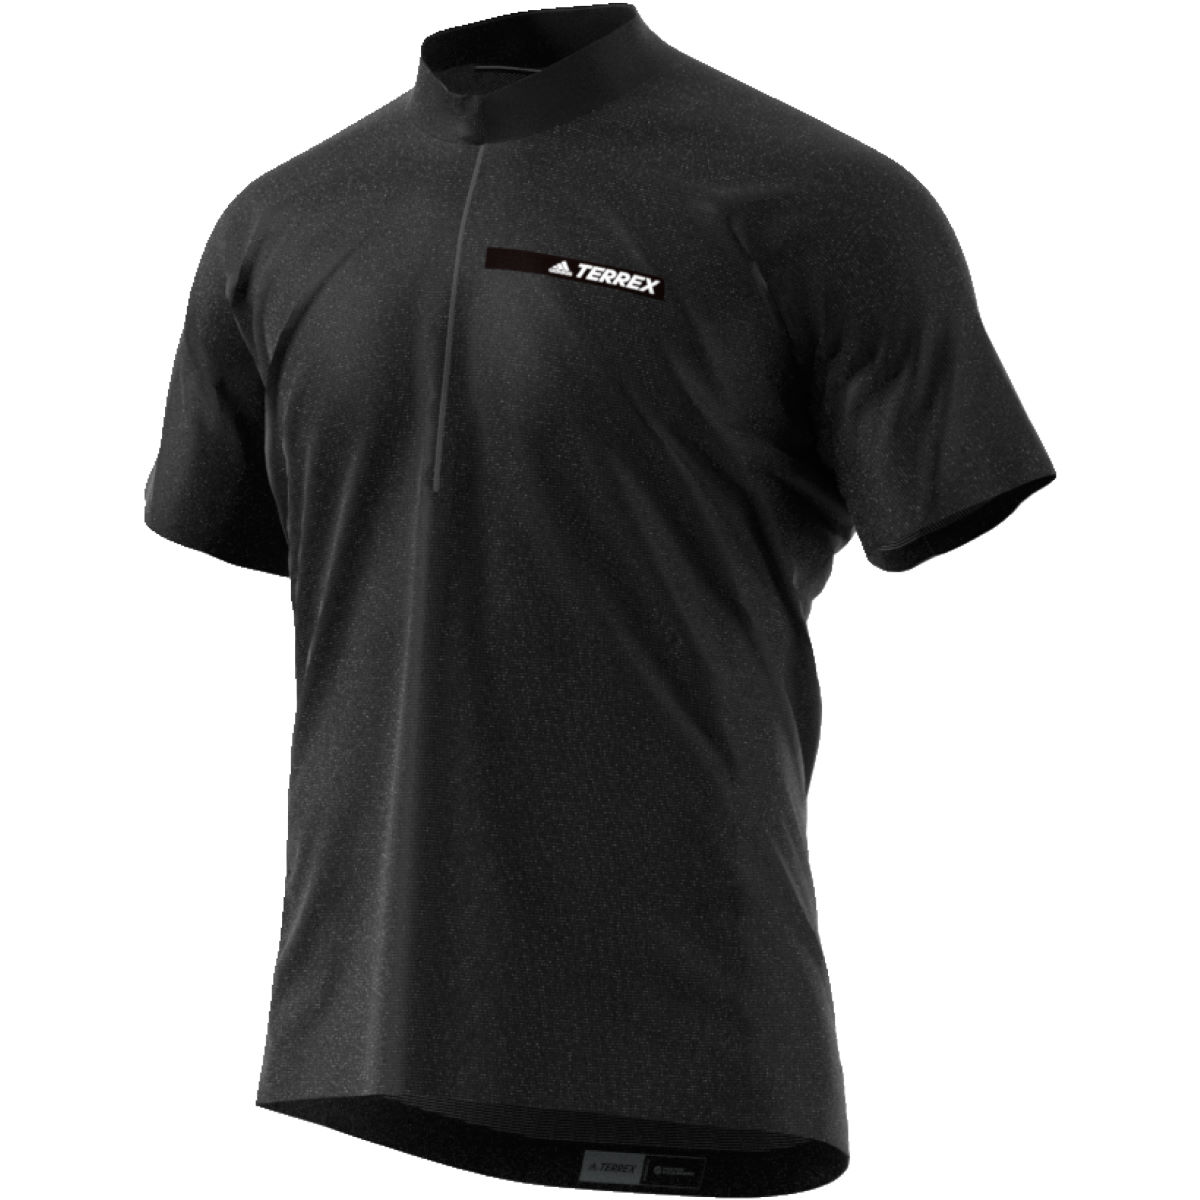 Maillot Adidas Agravic Windshirt (PE17) - S Noir Maillots Outdoor